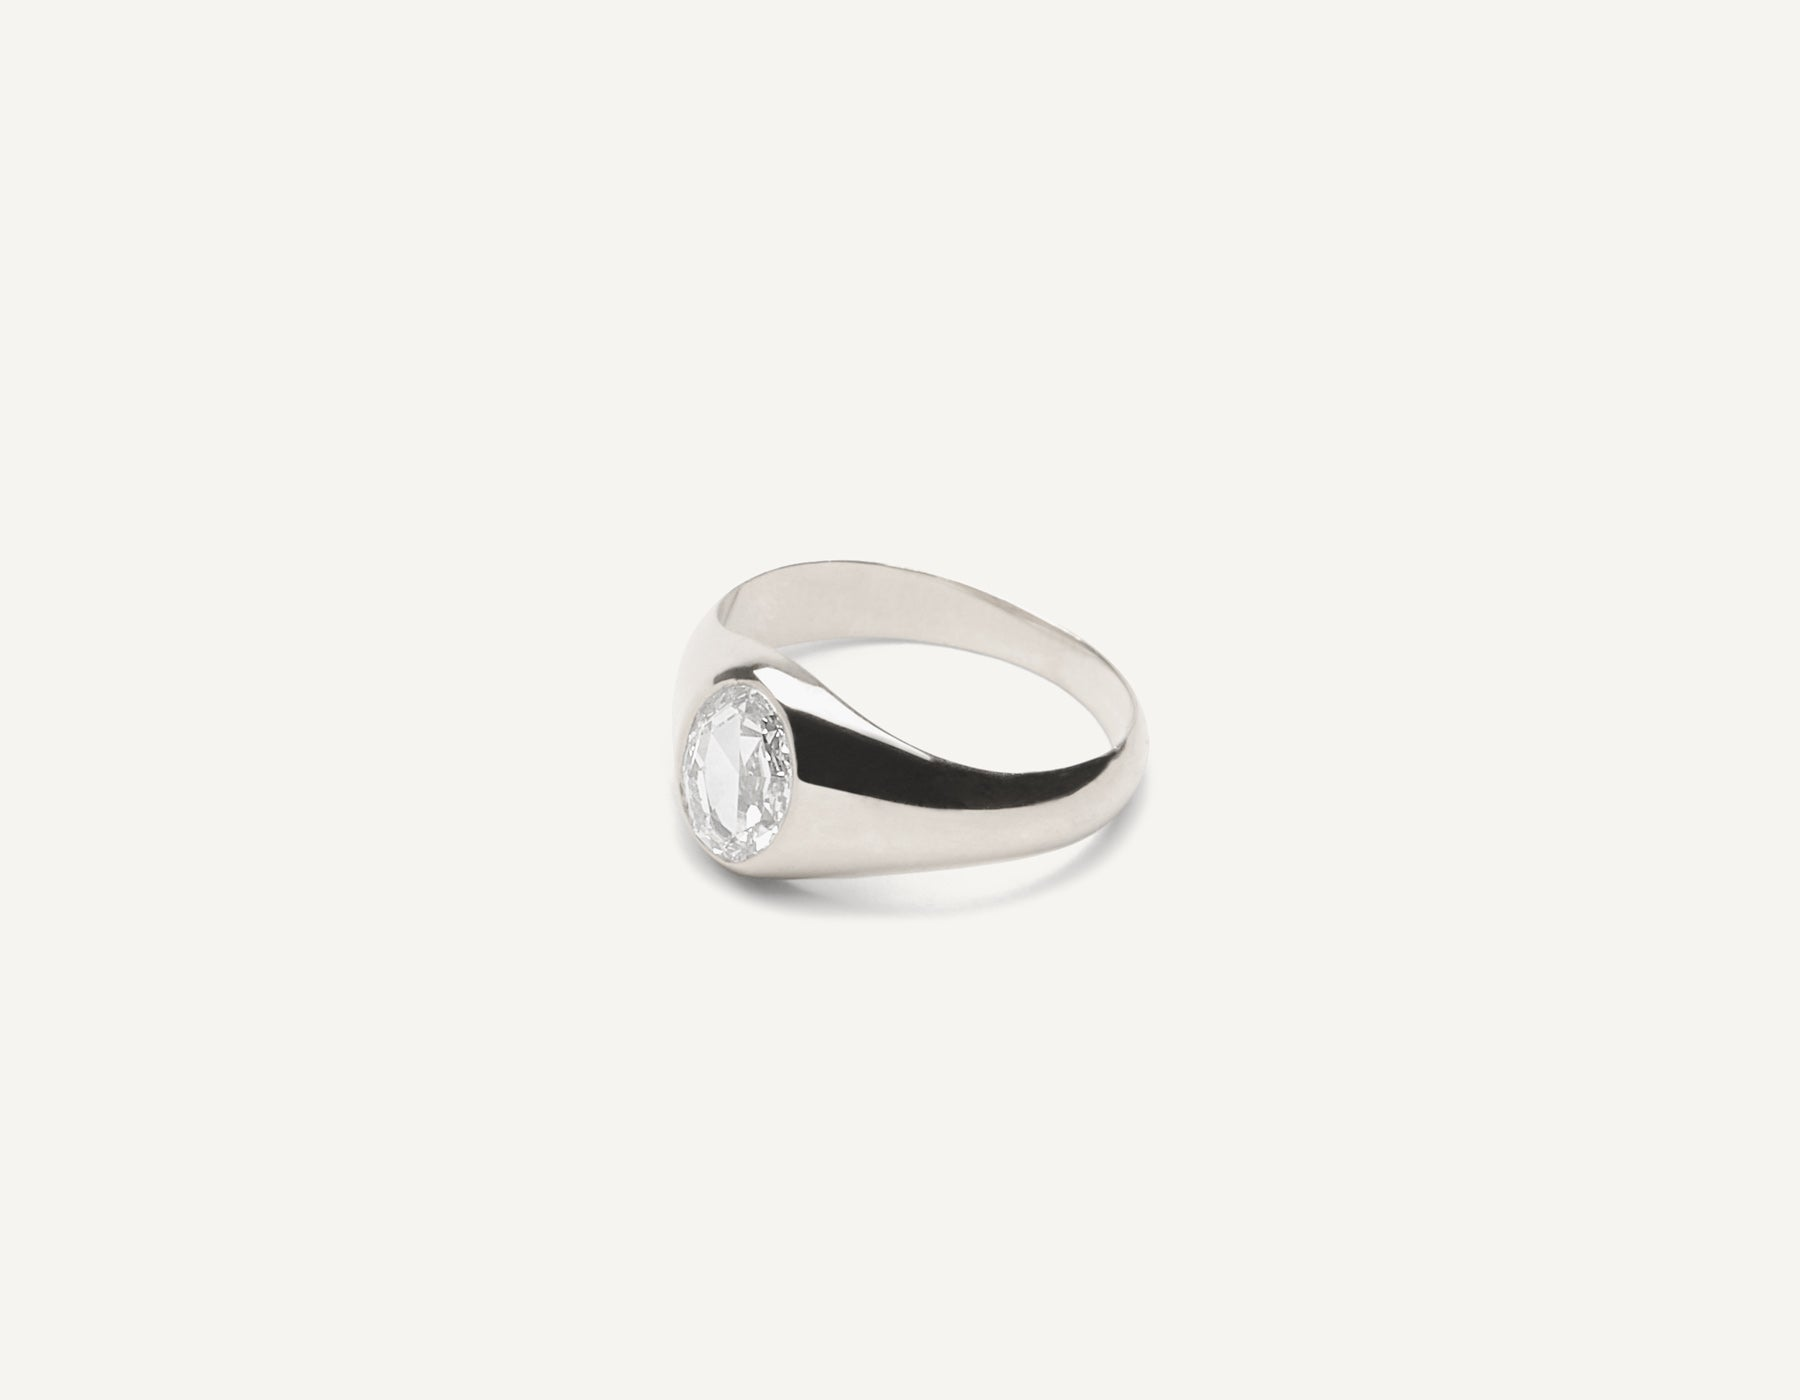 Vrai & Oro 18k solid gold Minimalist vintage Oval Rose Signet ring with .65 carat diamond, 18K White Gold